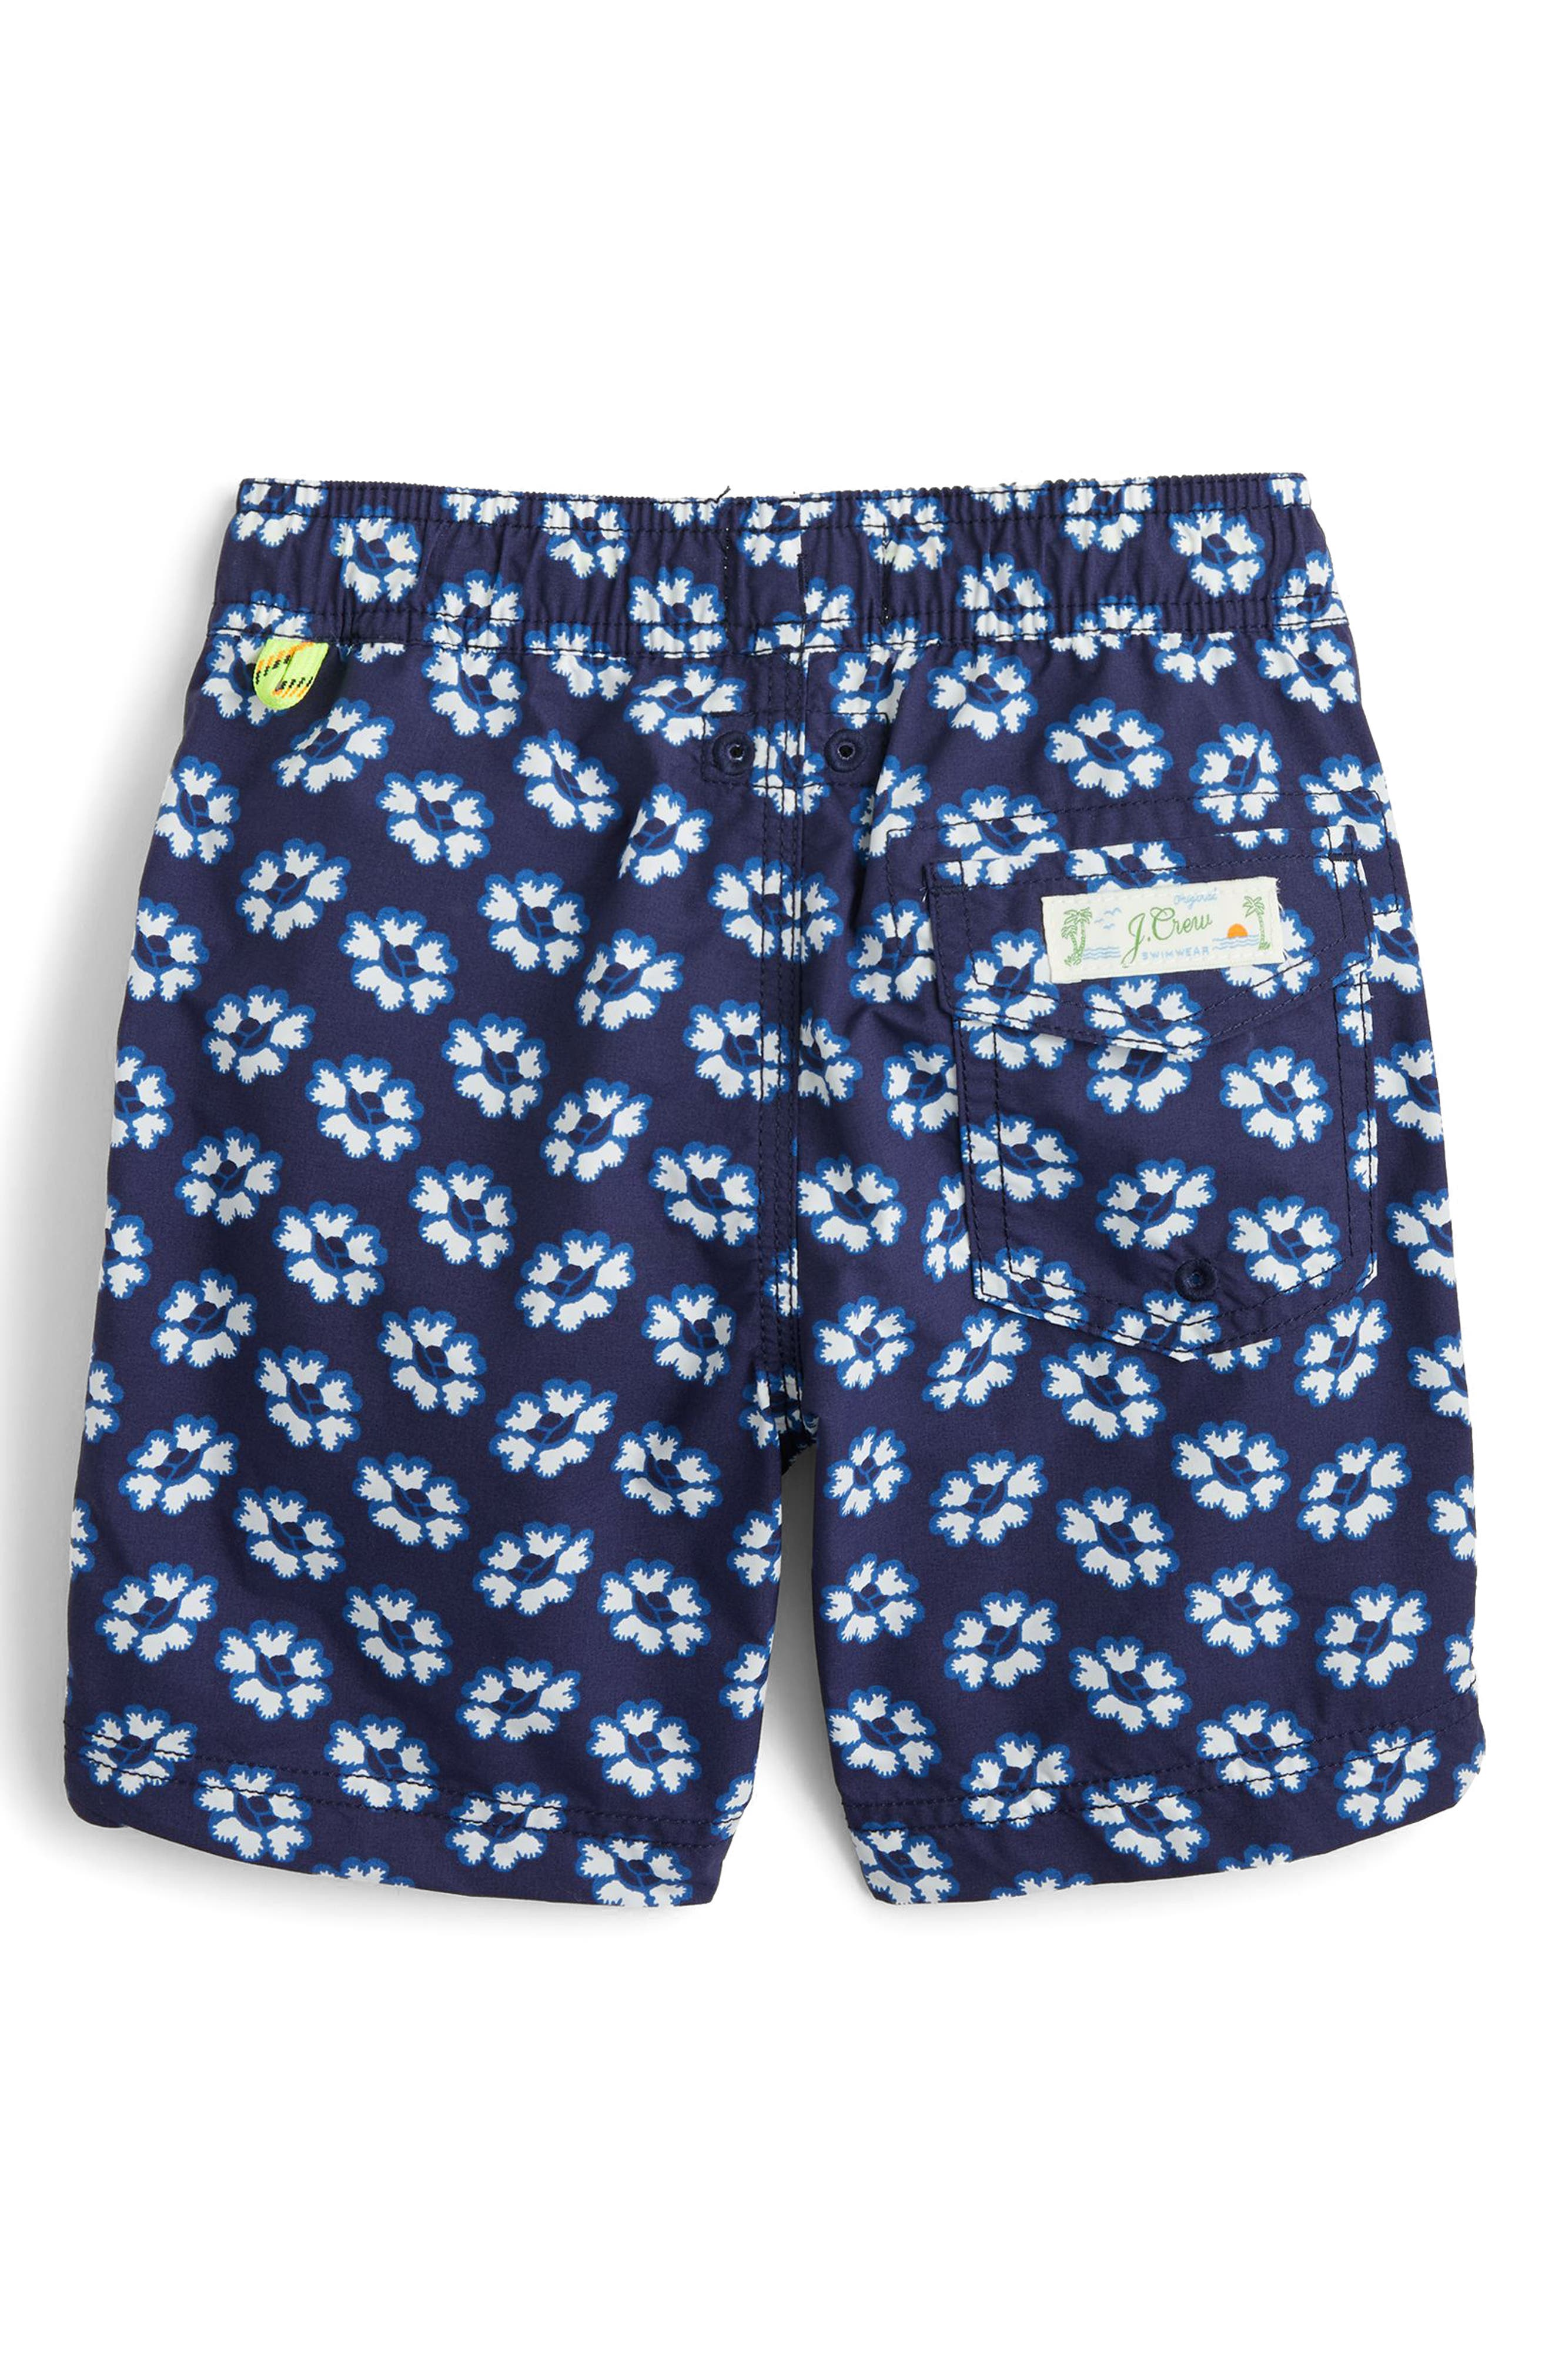 Blurry Flowers Swim Trunks,                             Alternate thumbnail 2, color,                             400